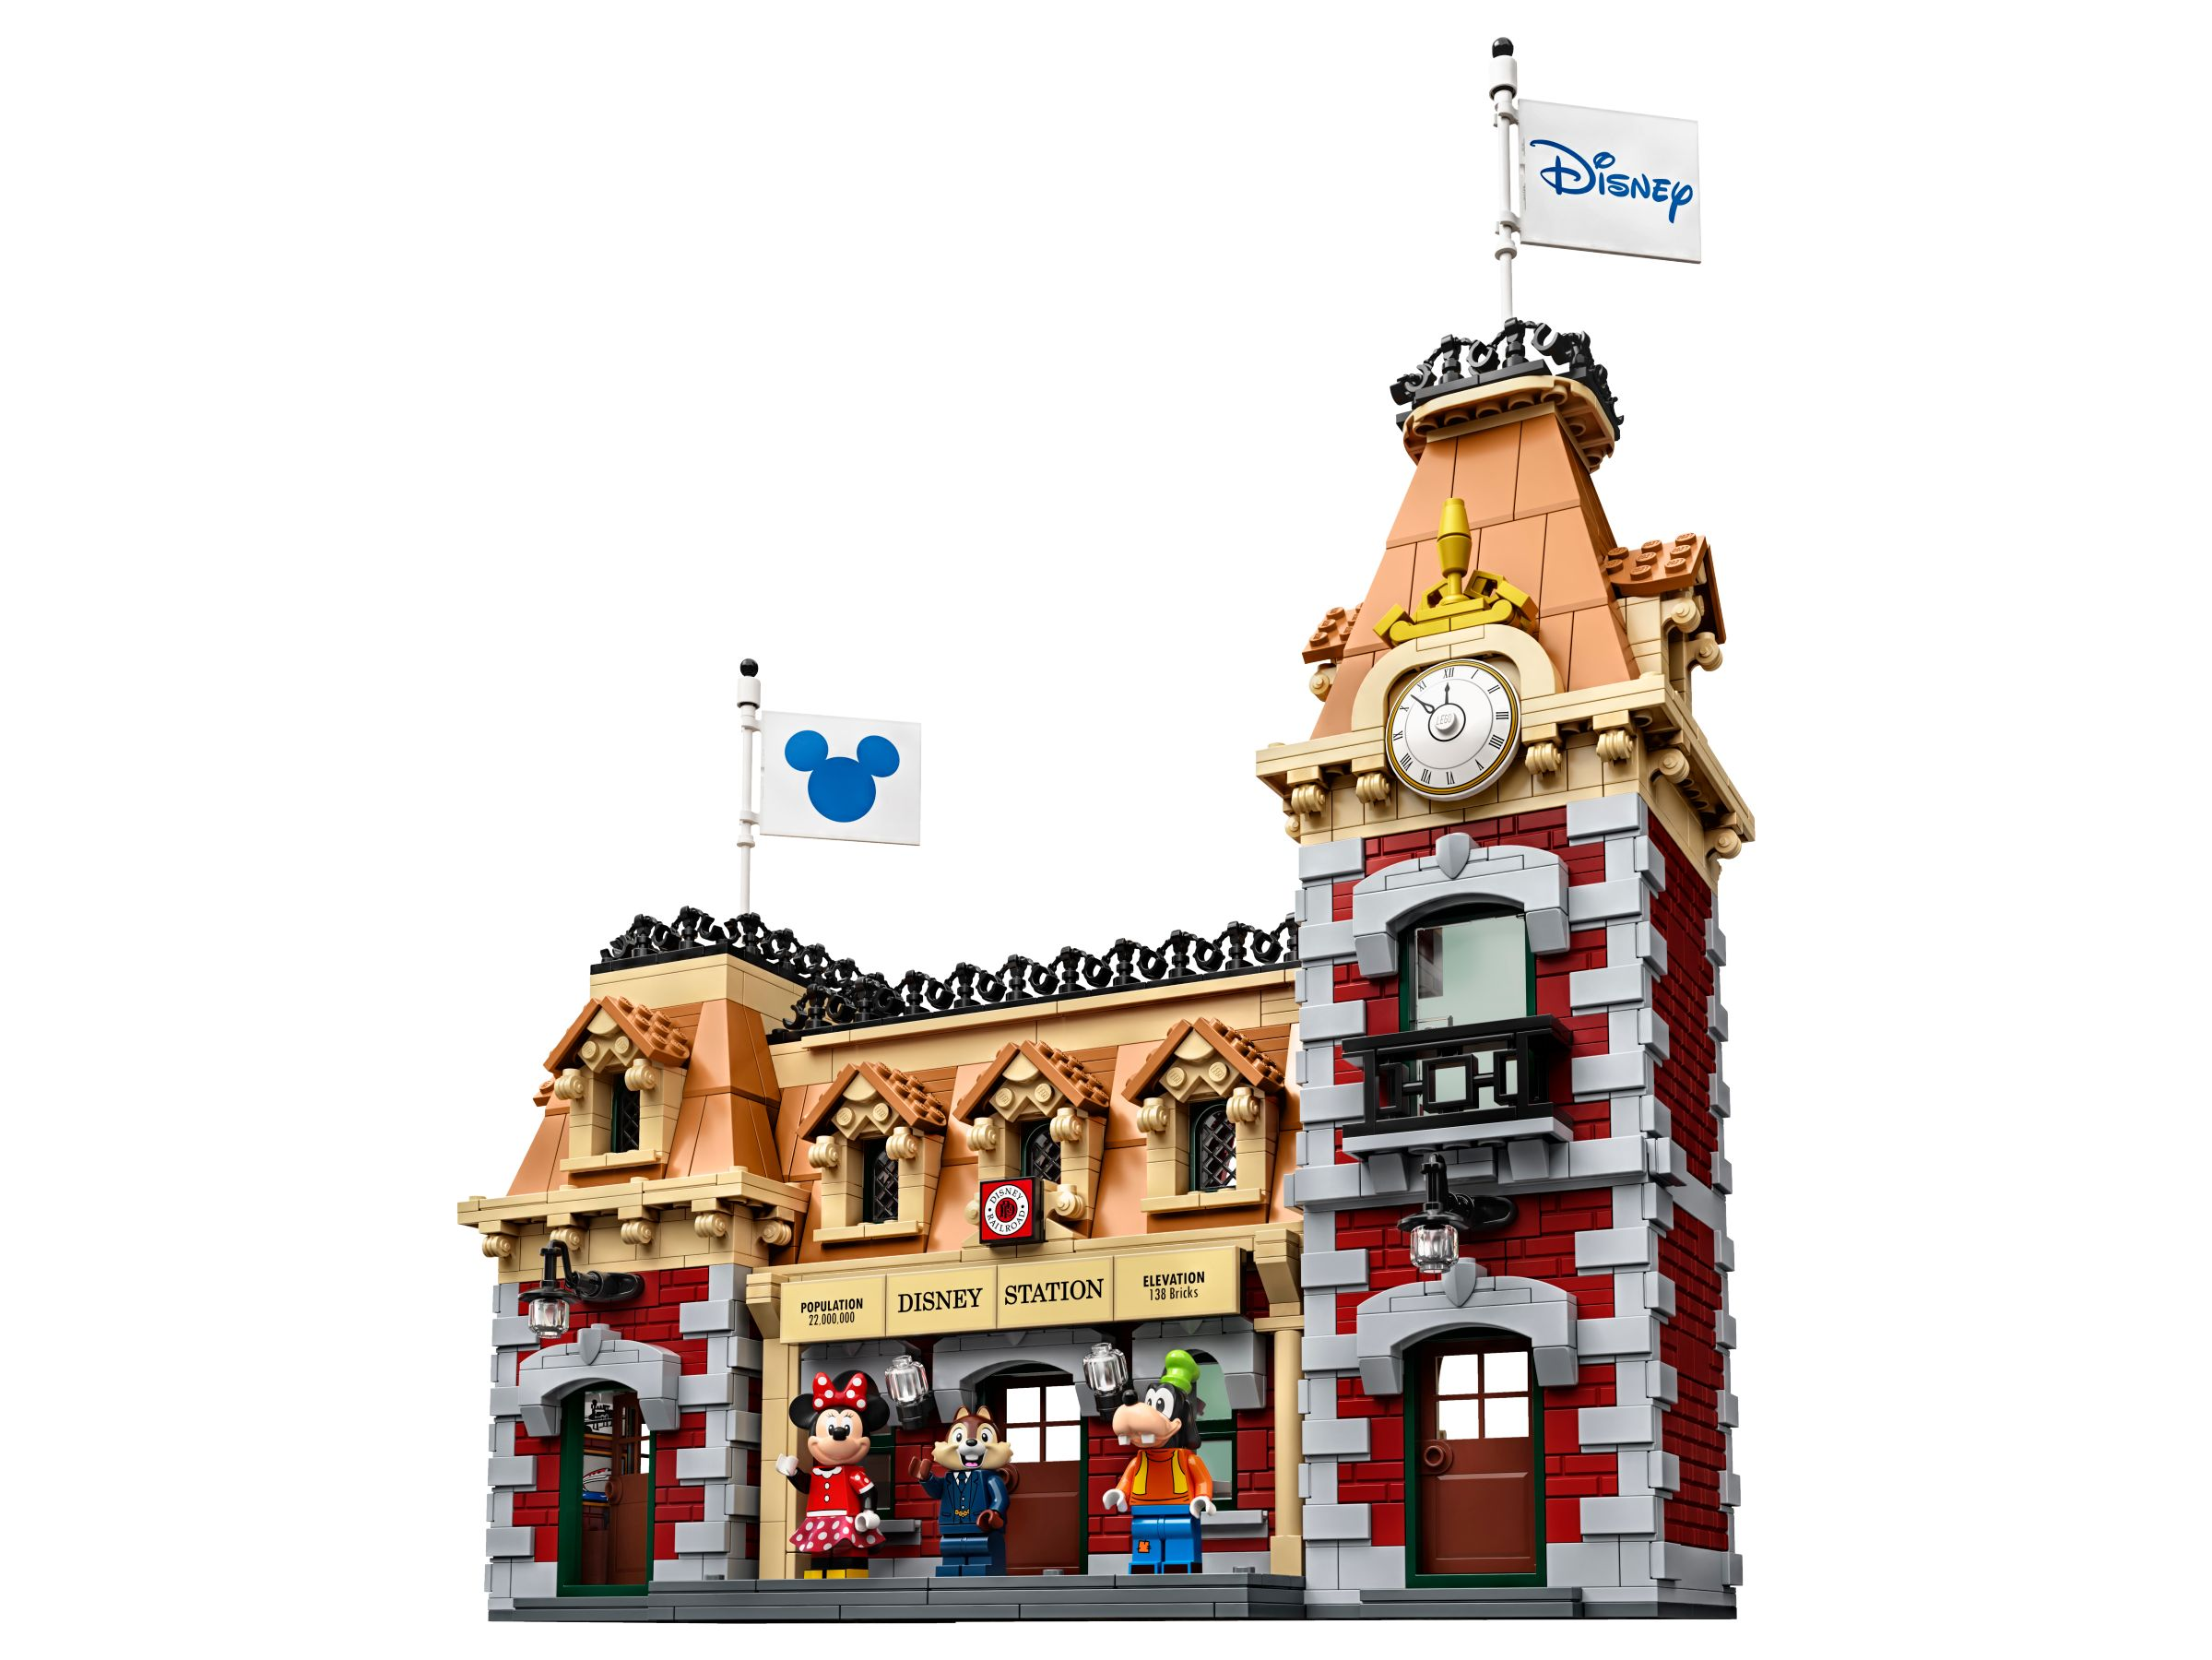 LEGO Advanced Models 71044 Disney Zug mit Bahnhof LEGO_71044_alt2.jpg